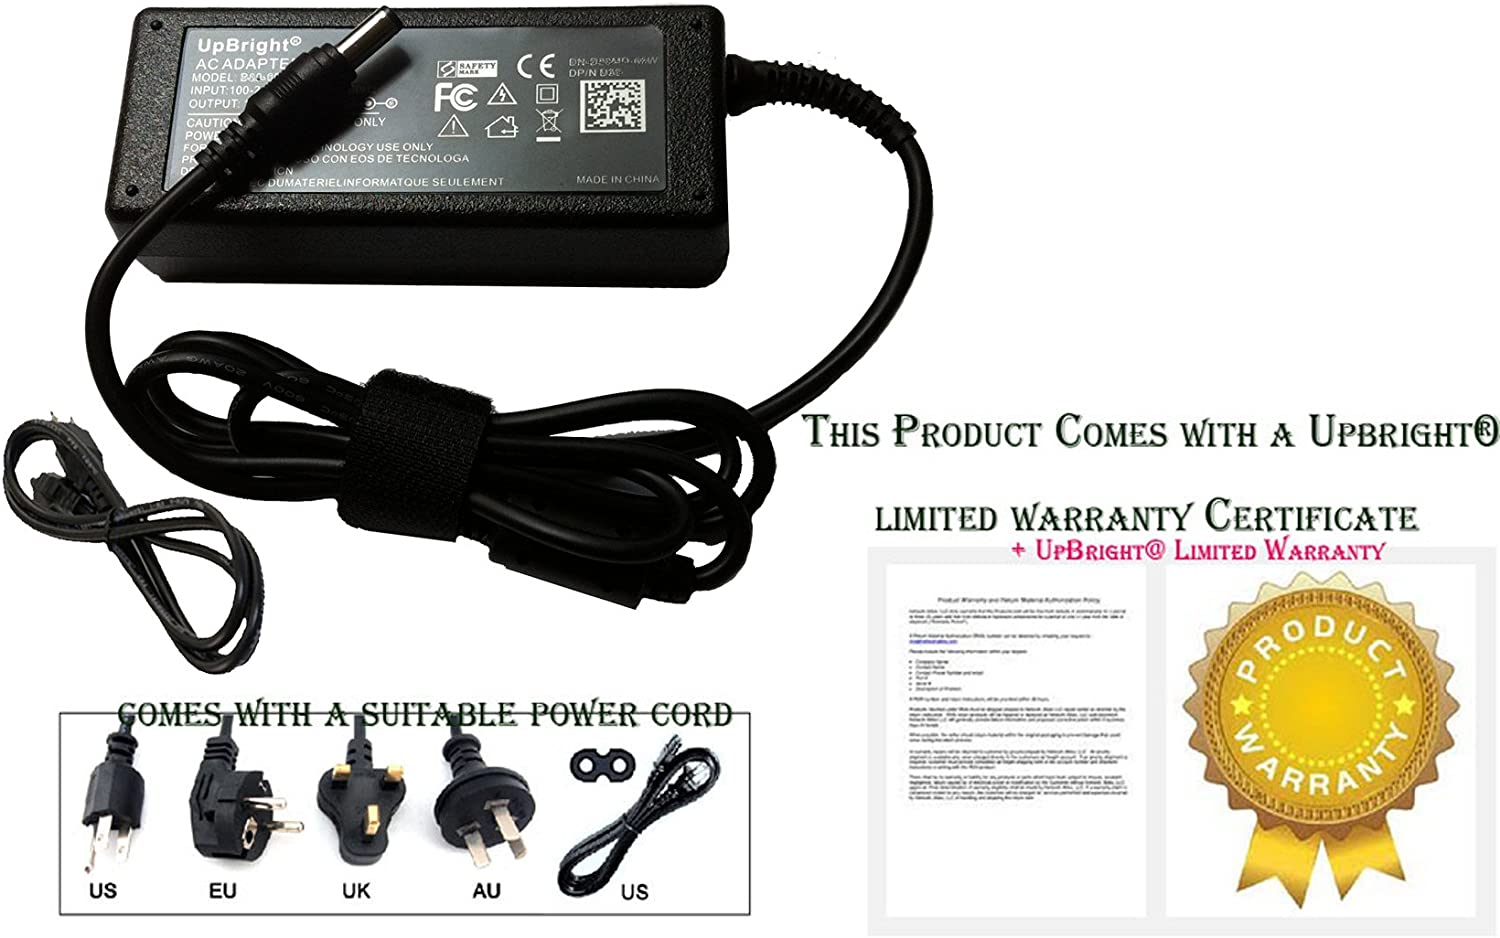 w//Barrel Round Tip UpBright New Global 24V AC//DC Adapter for Model ZF120A-2404000 ZF120A2404000 Shenzhenshi Zhenhua 24VDC 4000mA 24.0V 4A Switching Power Supply Cord Cable Battery Charger PSU